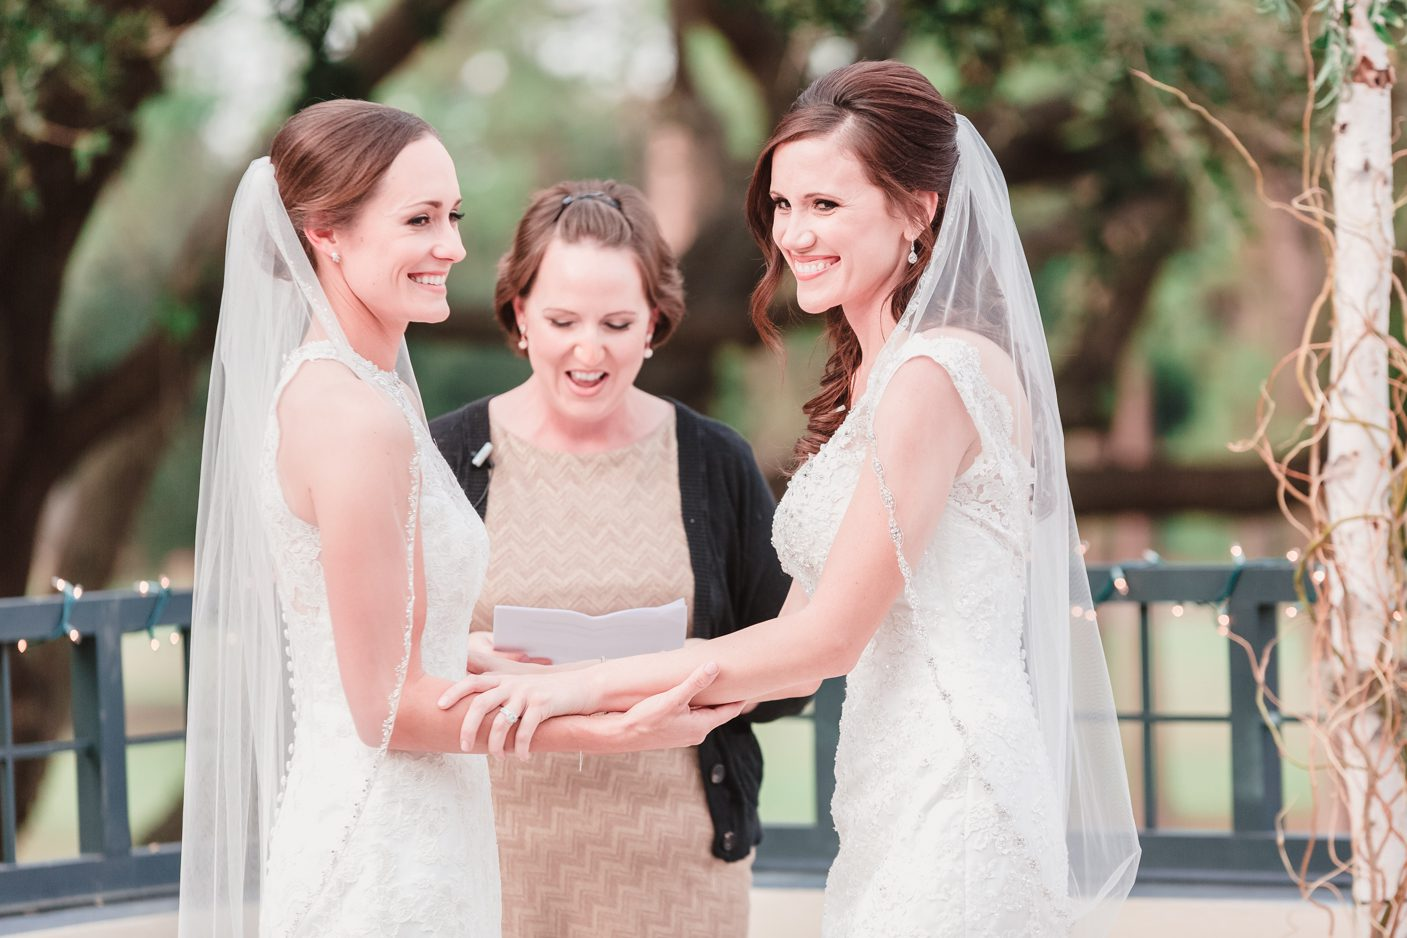 Two brides at their gay wedding in Orlando captured by top photographer